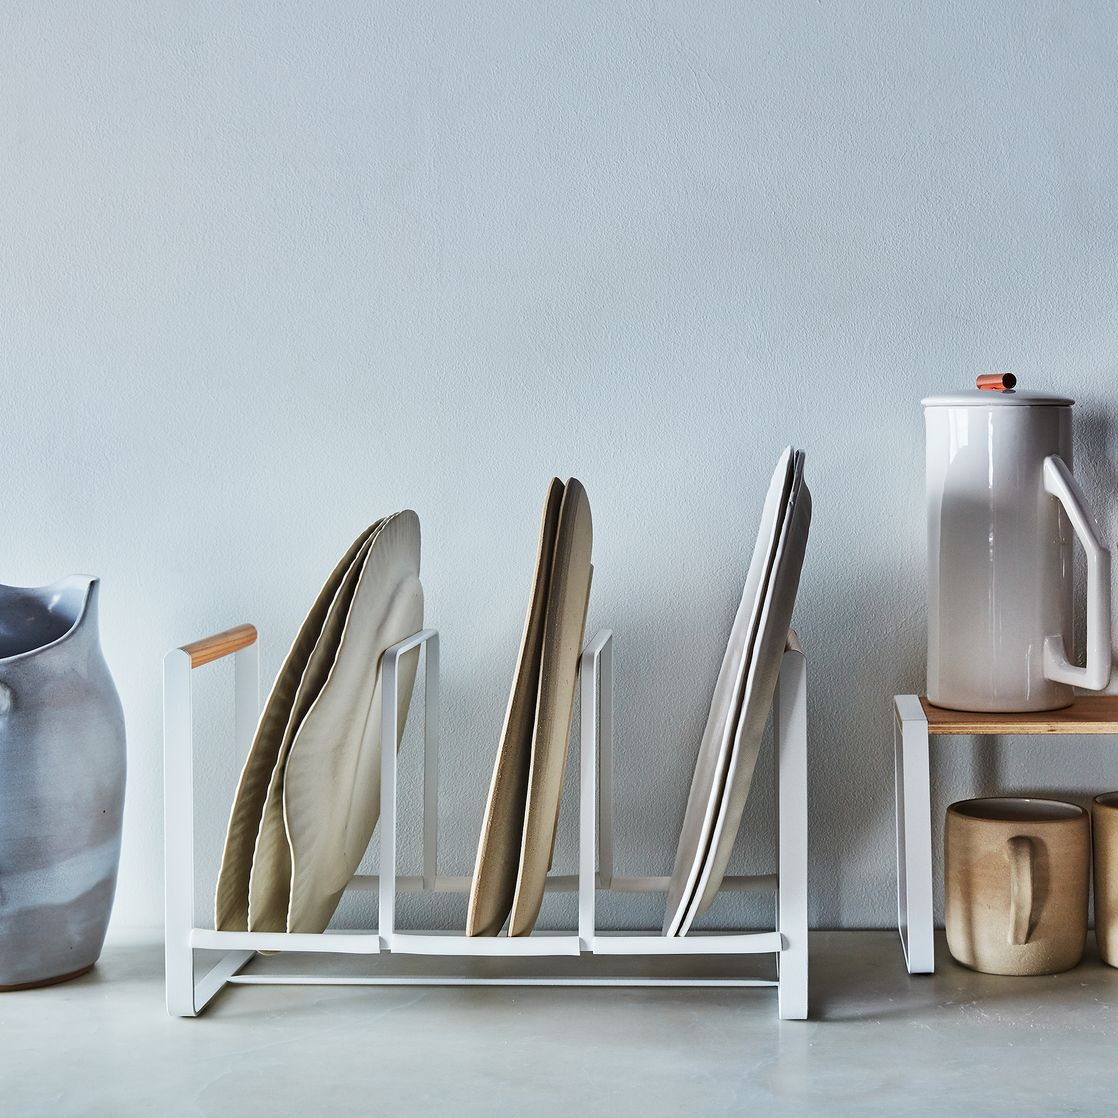 Steel & Wood Dish Organizer (via  Food52 )